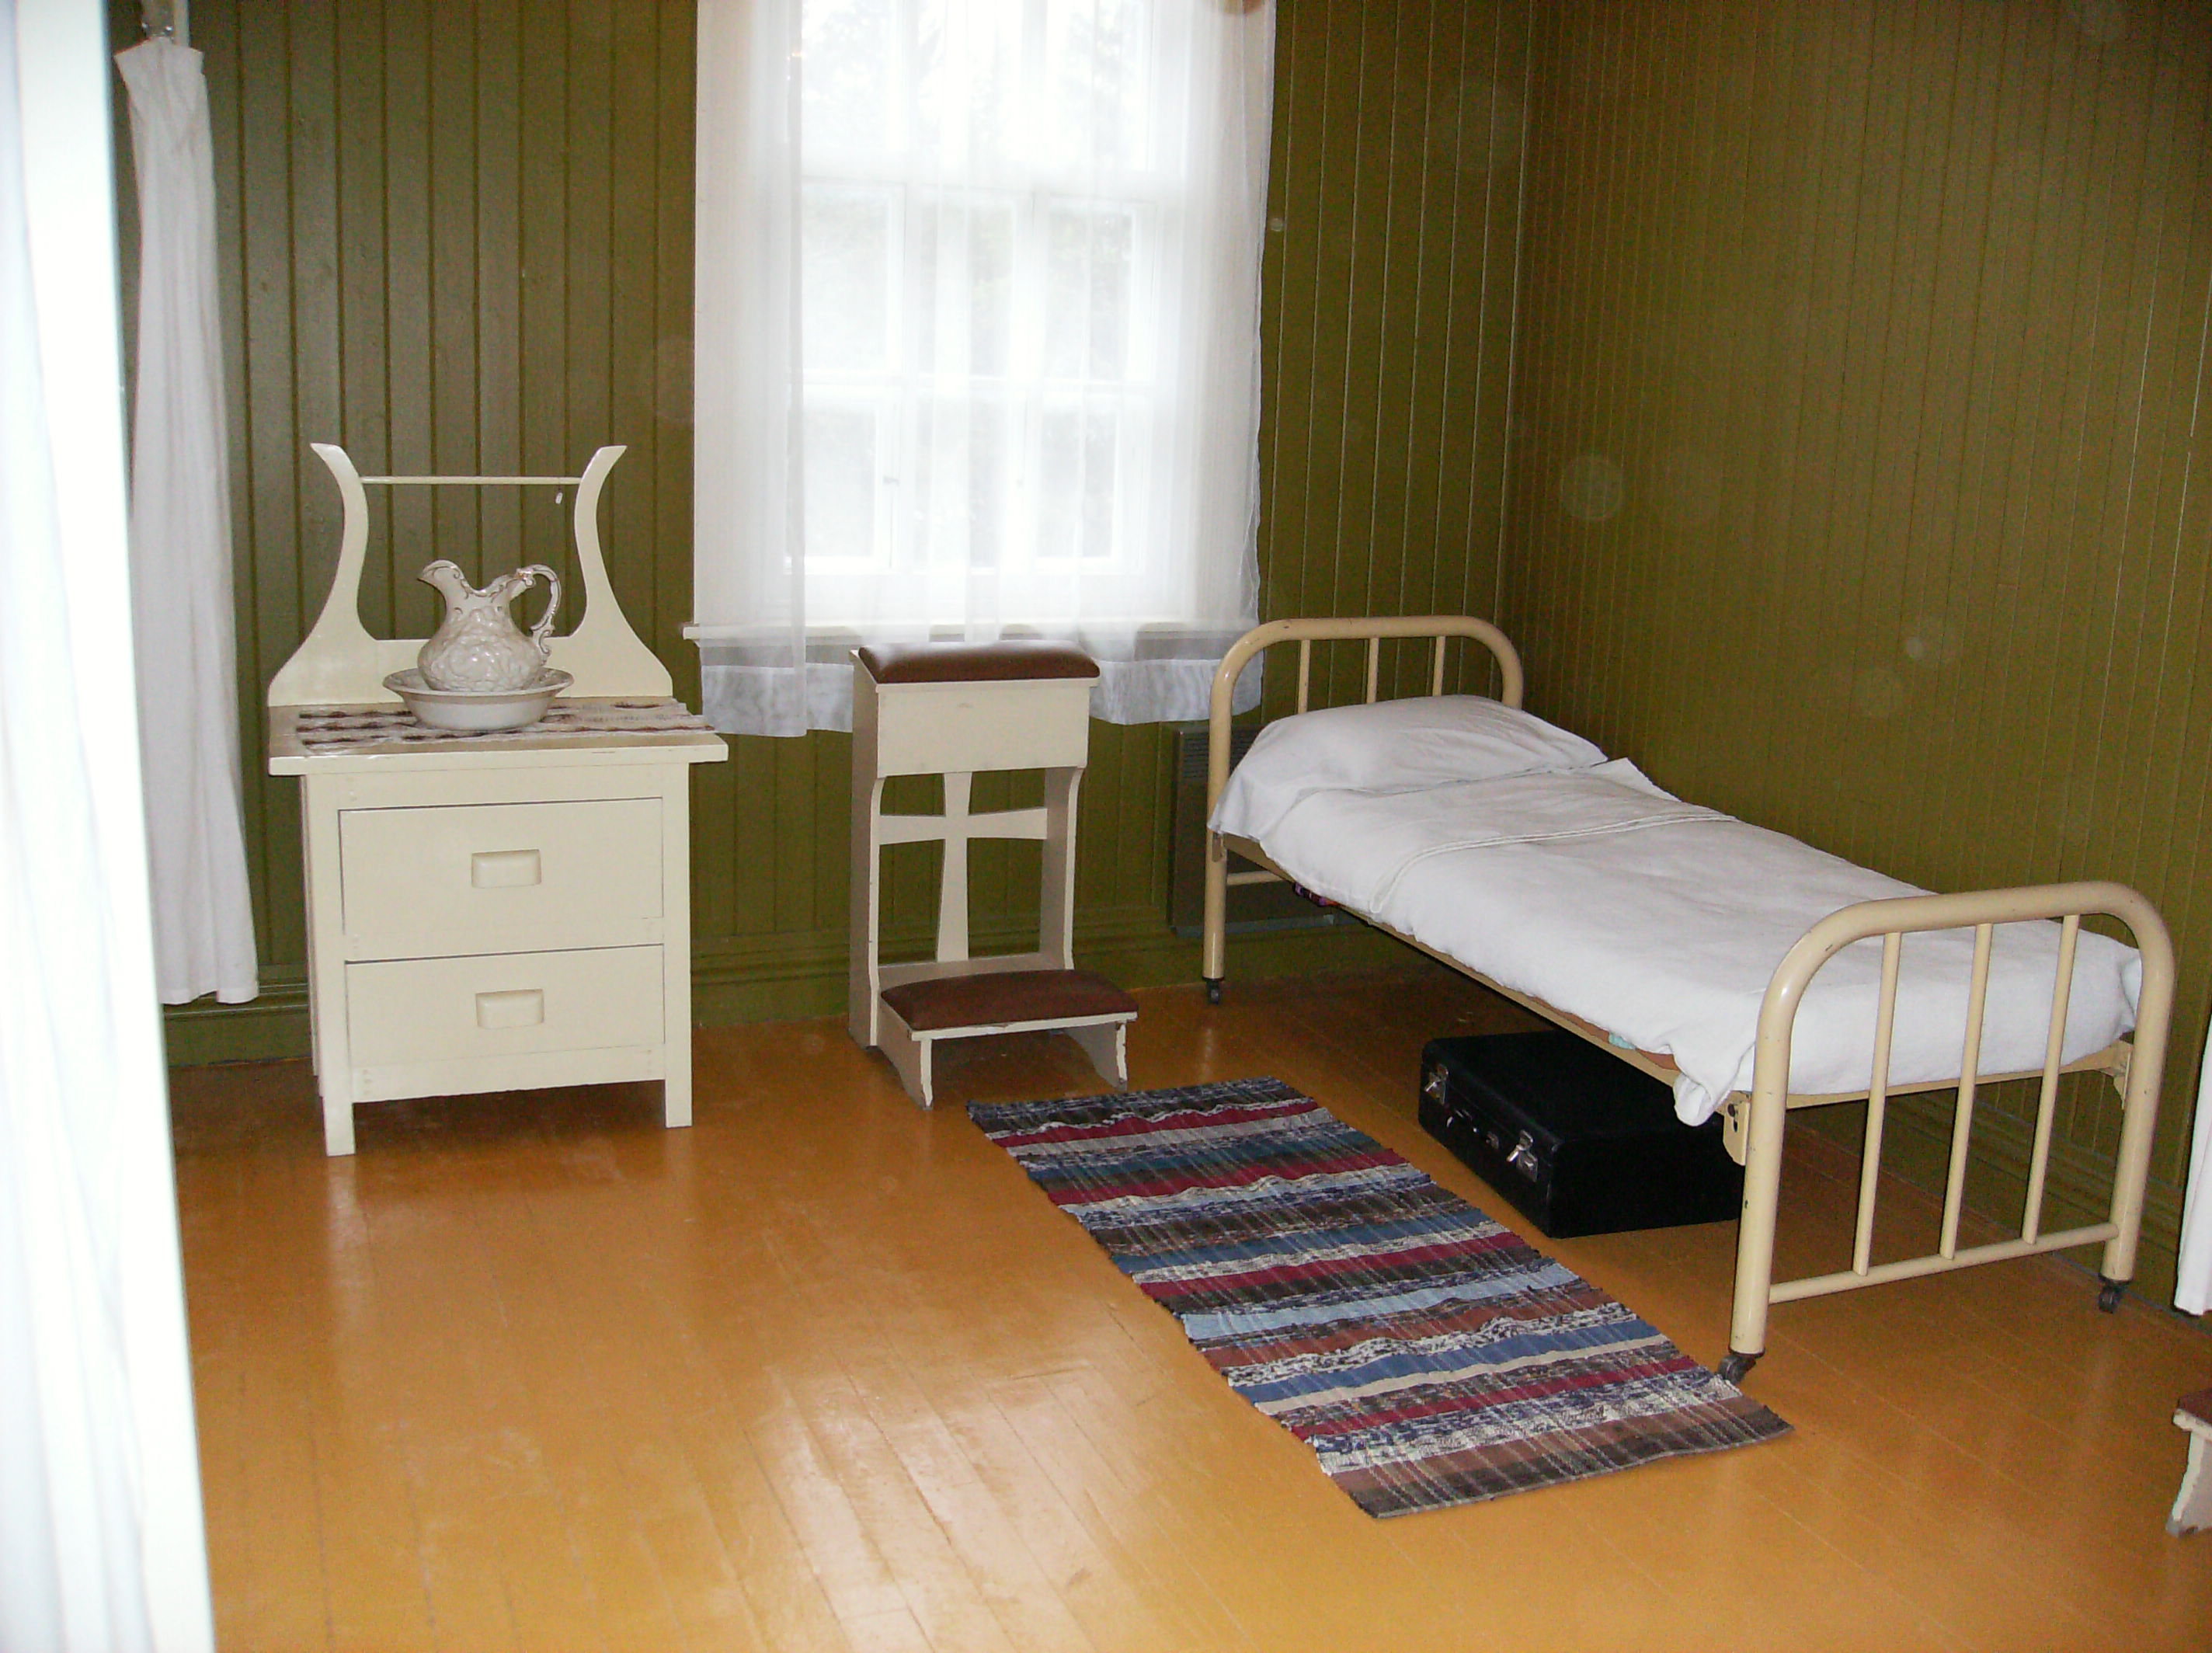 File:Val Jalbert historic housing interiors 7.JPG - Wikimedia Commons